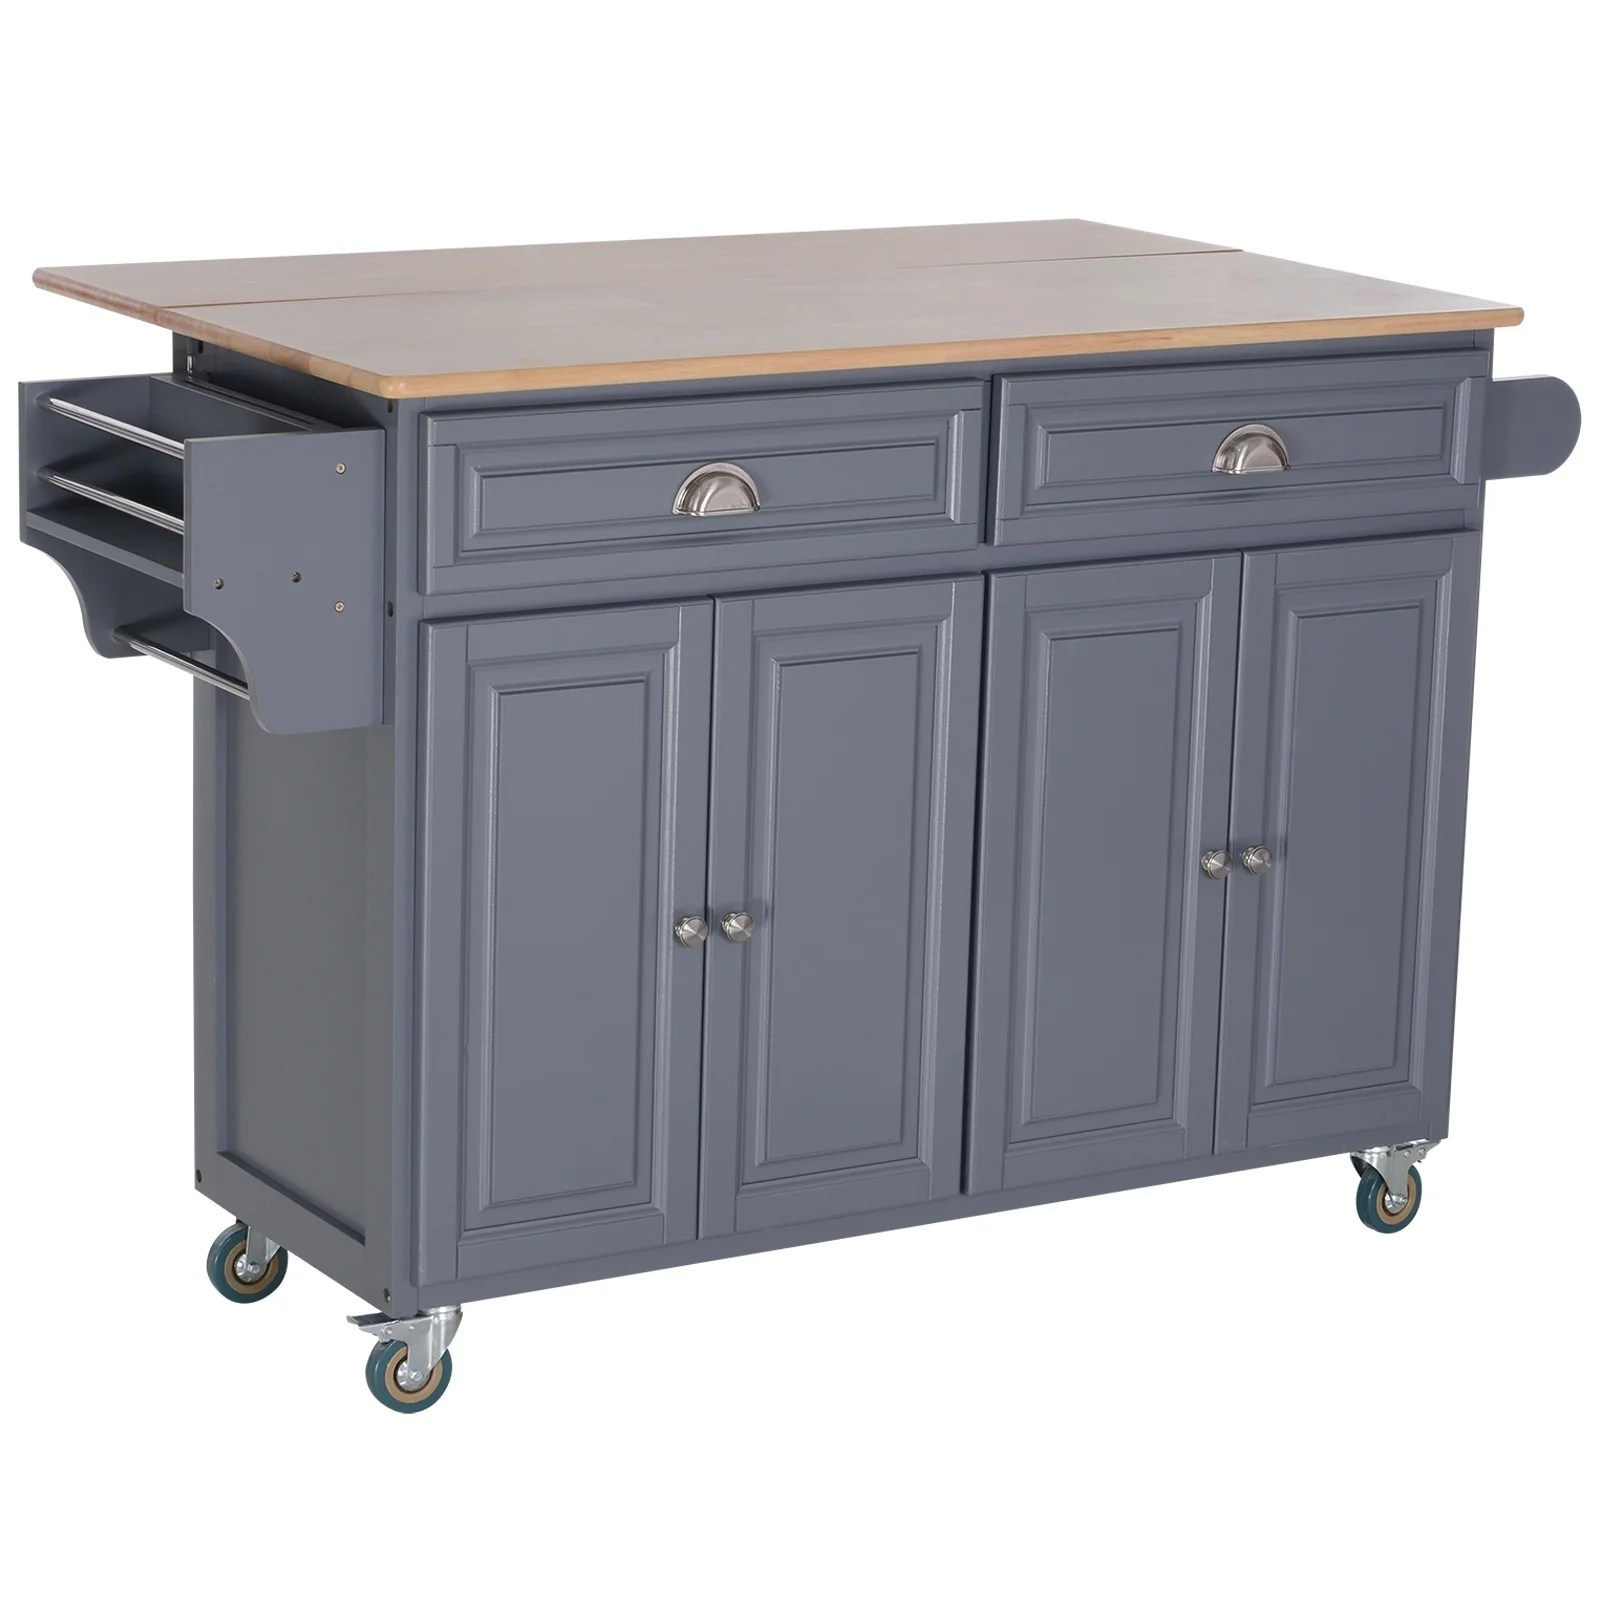 Homcom Rolling Oak Wood Drop Leaf Kitchen Island Cart With Storage And Butcher Block Grey